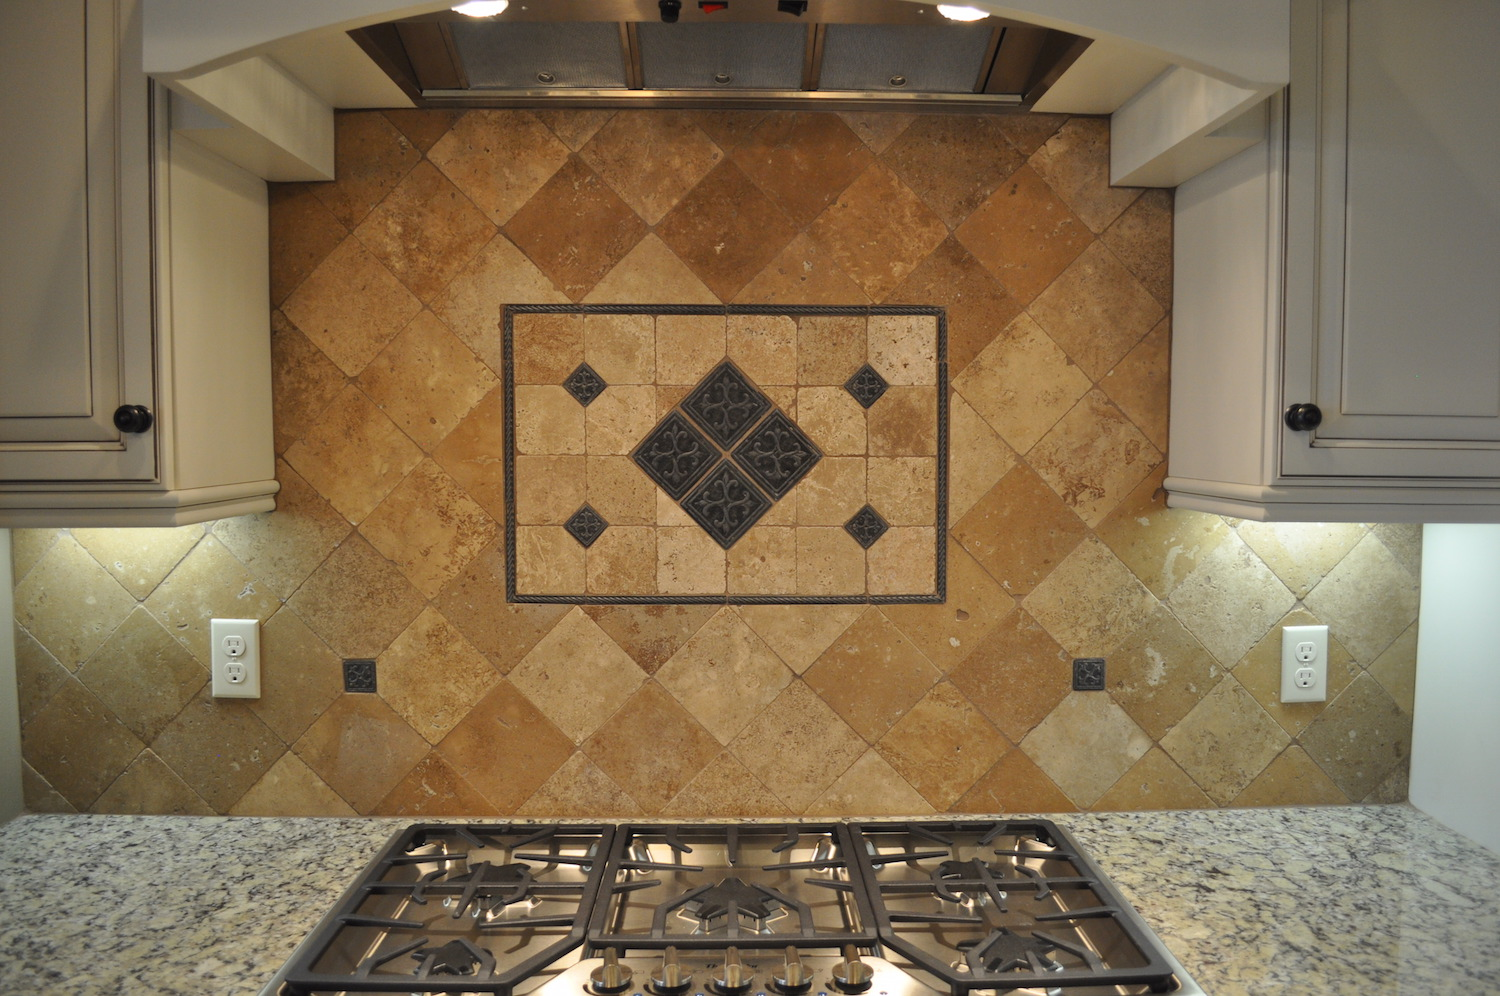 21 - Backsplash Detail